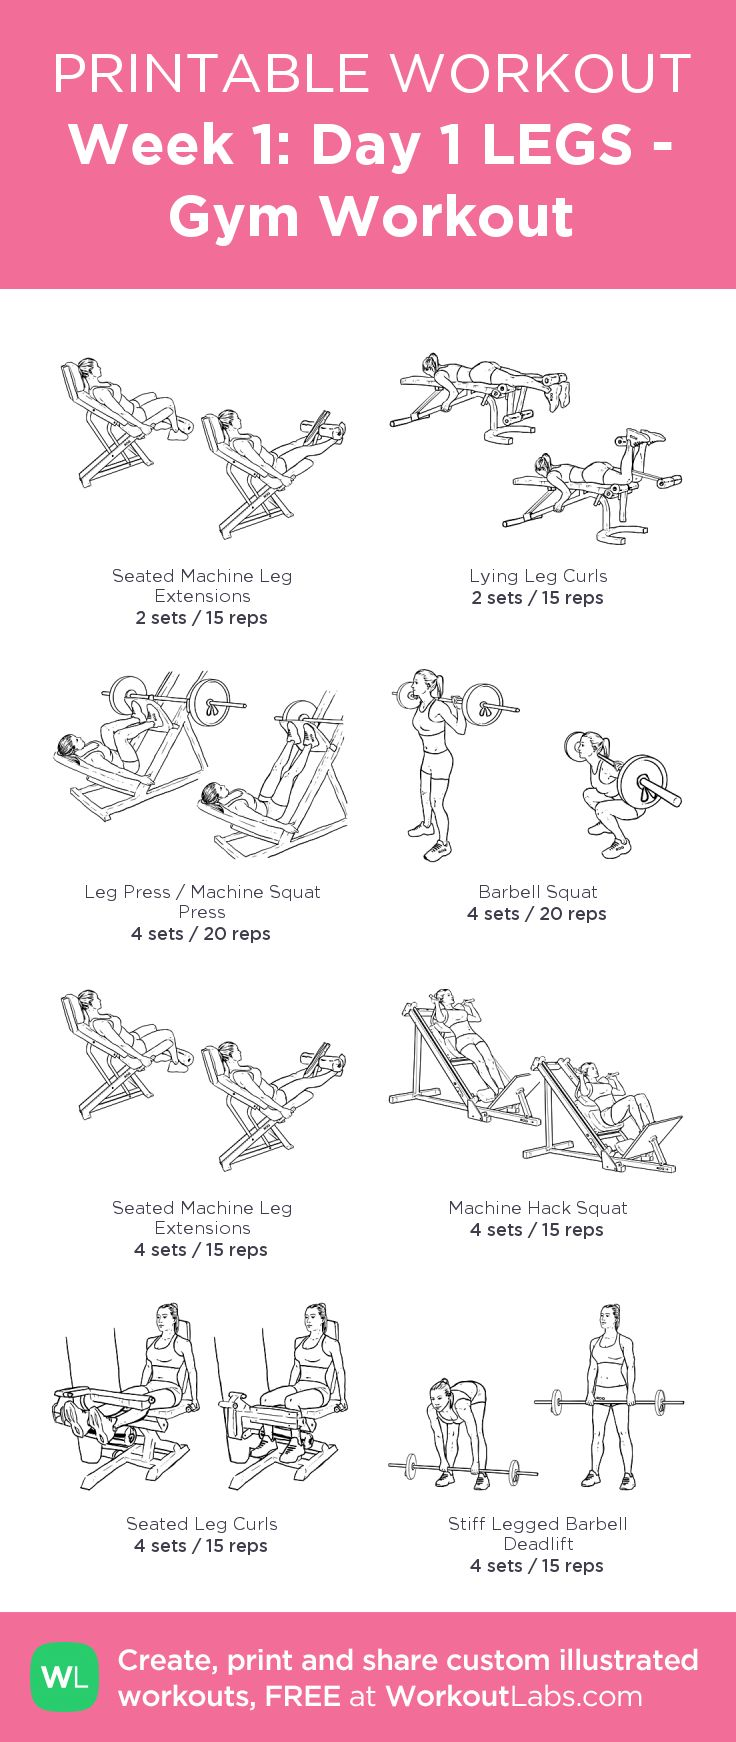 Week 1: Day 1 LEGS - Gym Workout: my visual workout created at WorkoutLabs.com • Click through to customize and download as a FREE PDF! #customworkout